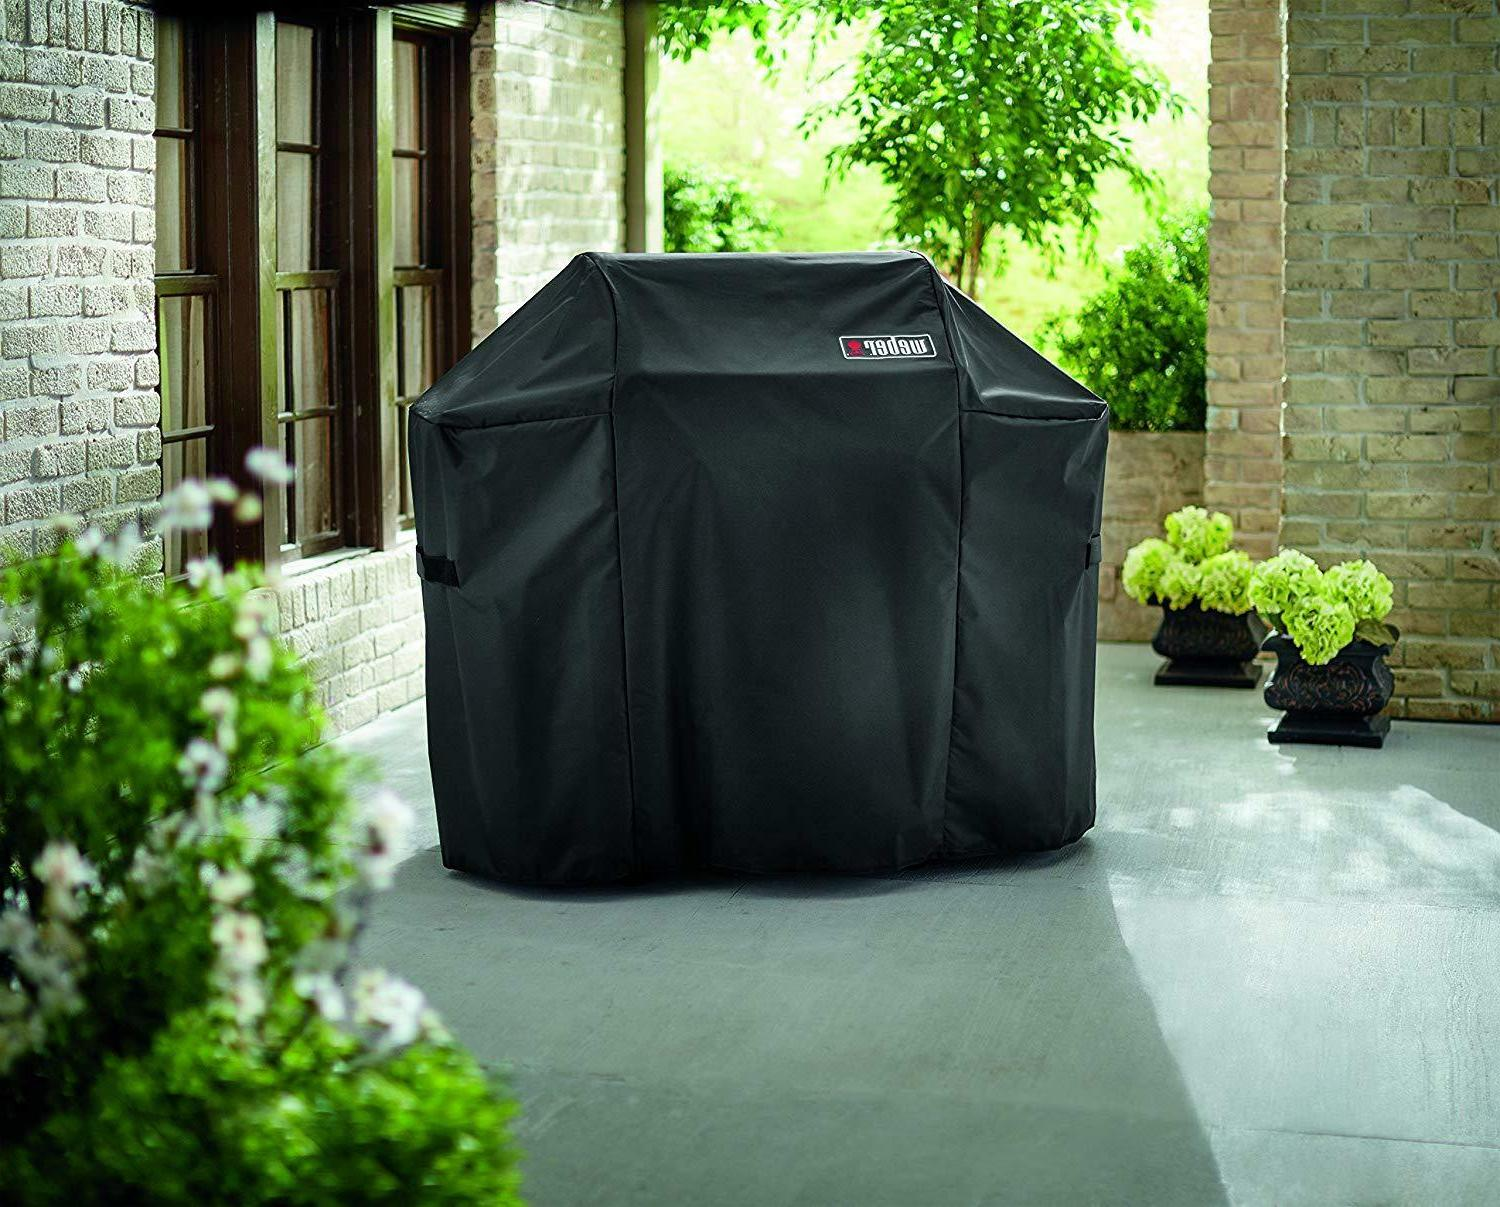 Weber 7106 Cover Black Storage Spirit 220 and Series Gas Grill